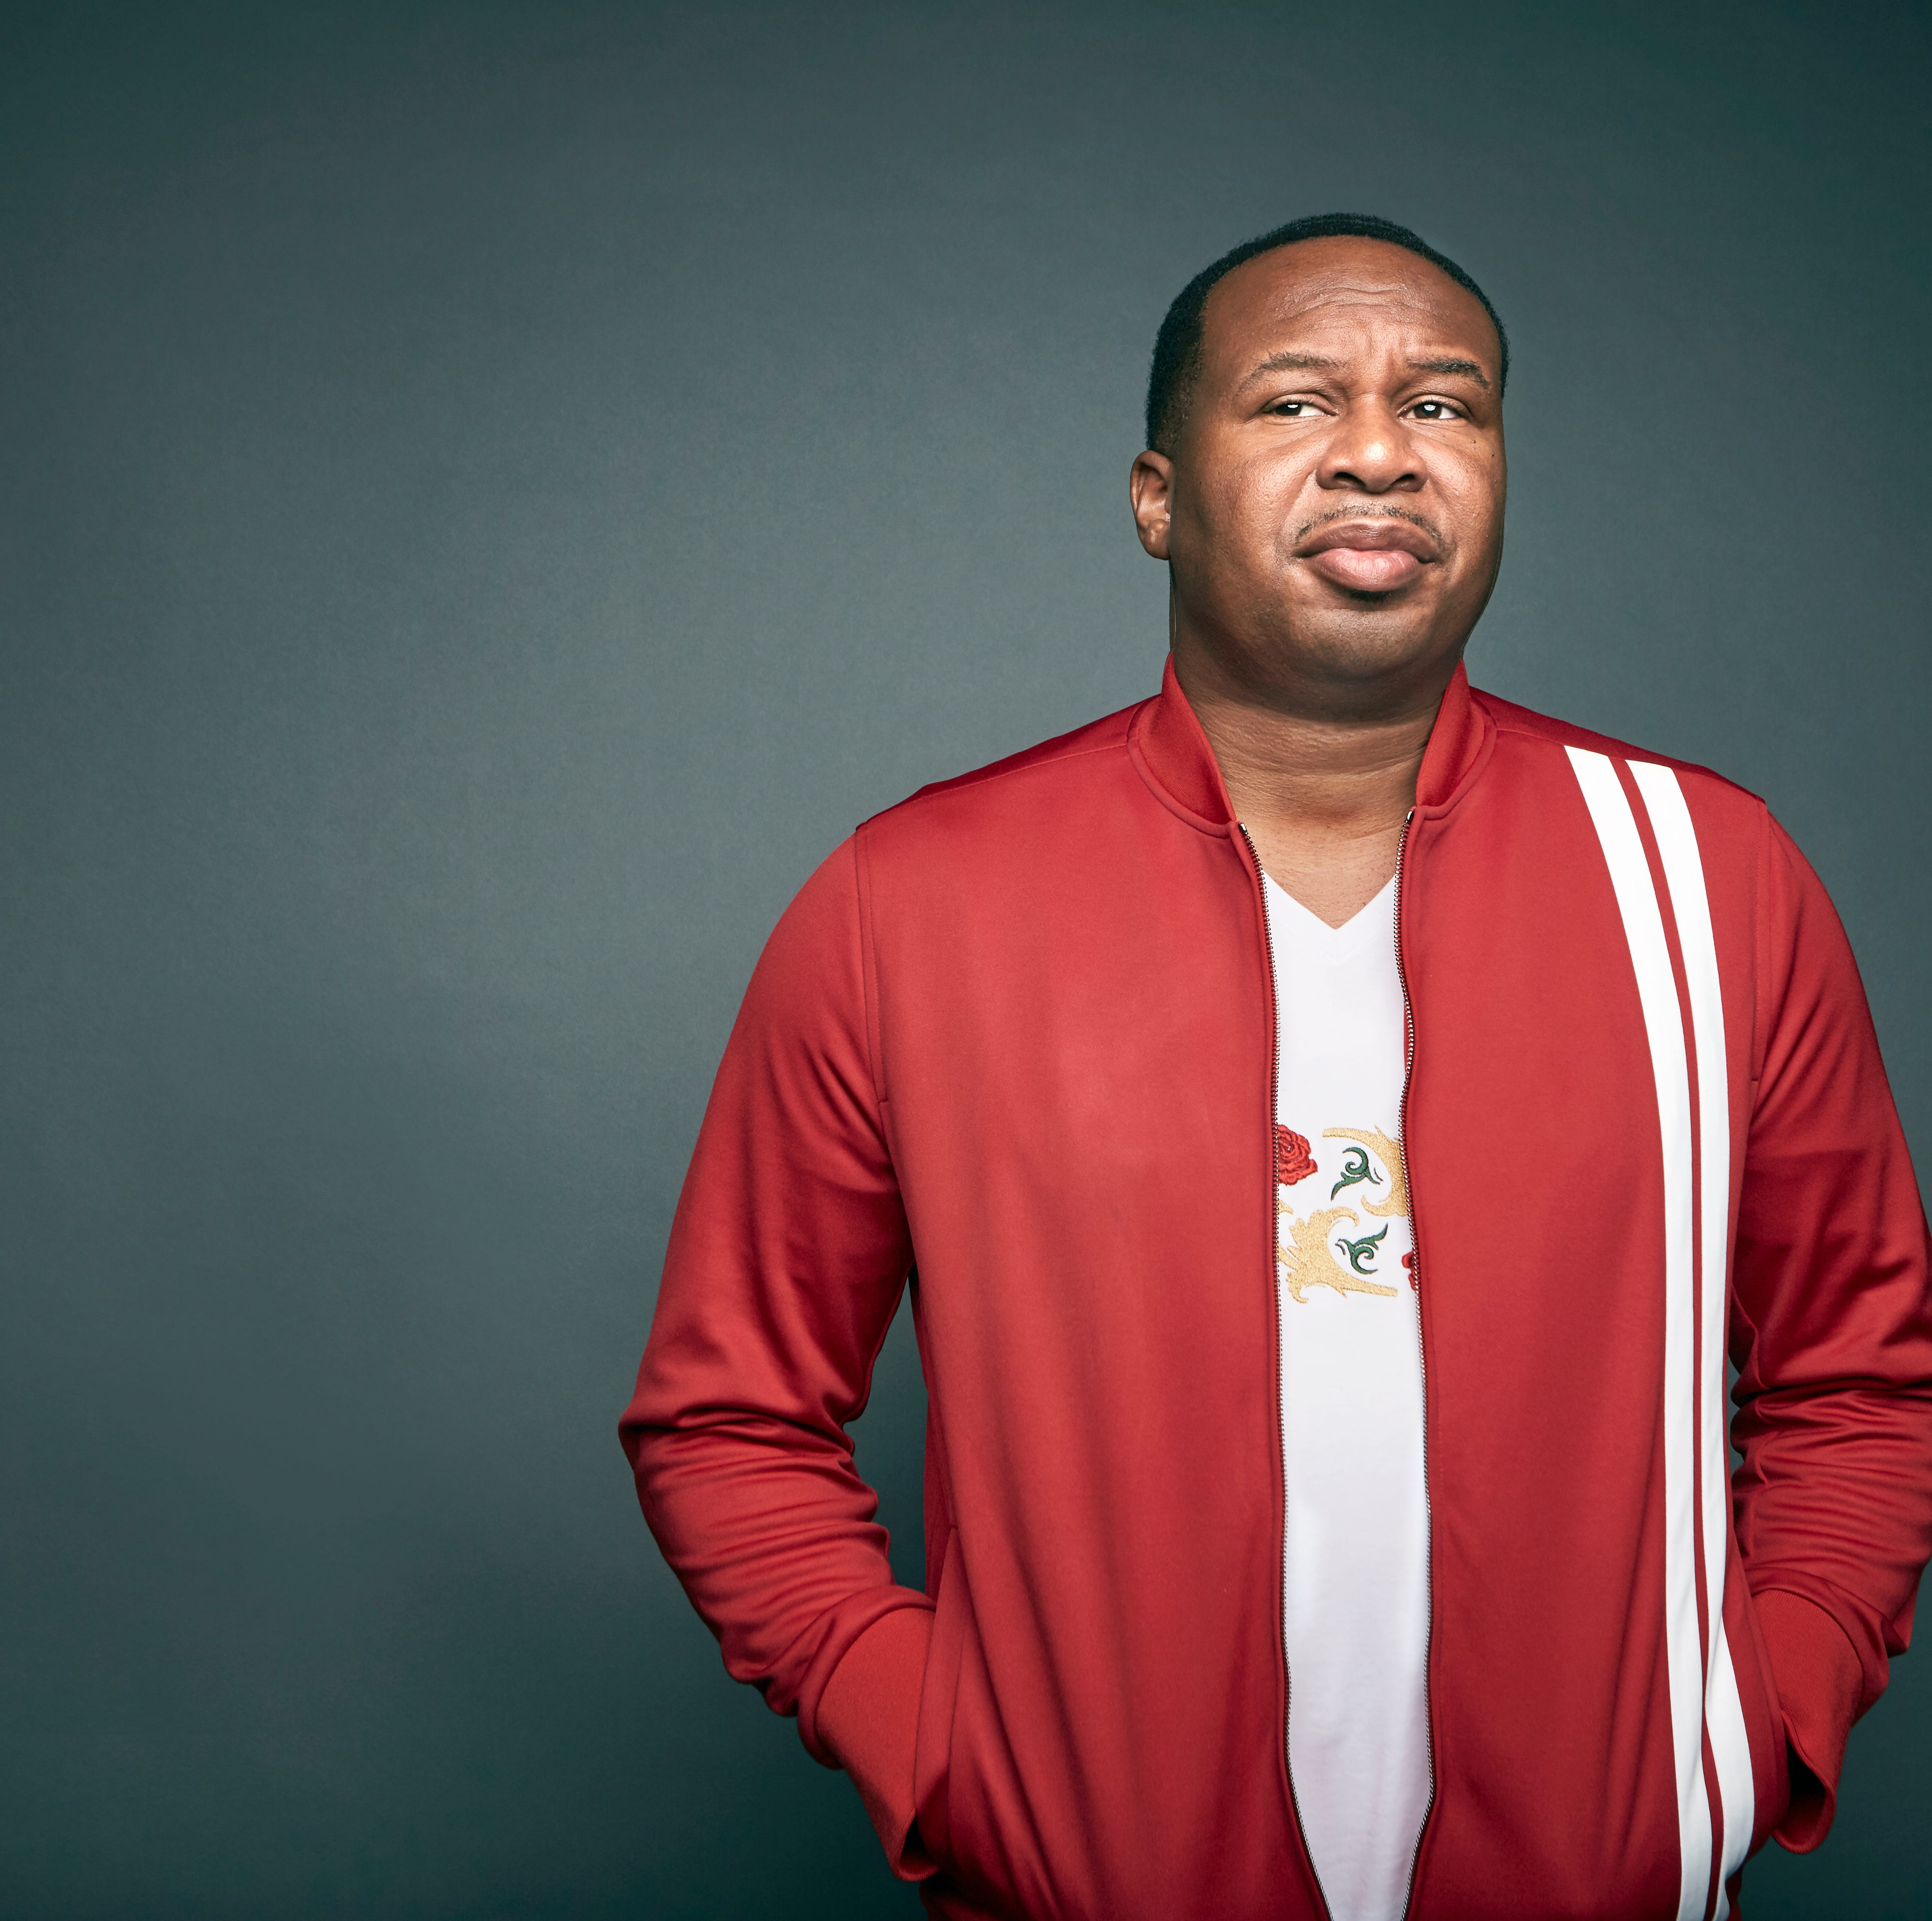 Roy Wood Jr. of 'The Daily Show' grew into comedy at FAMU